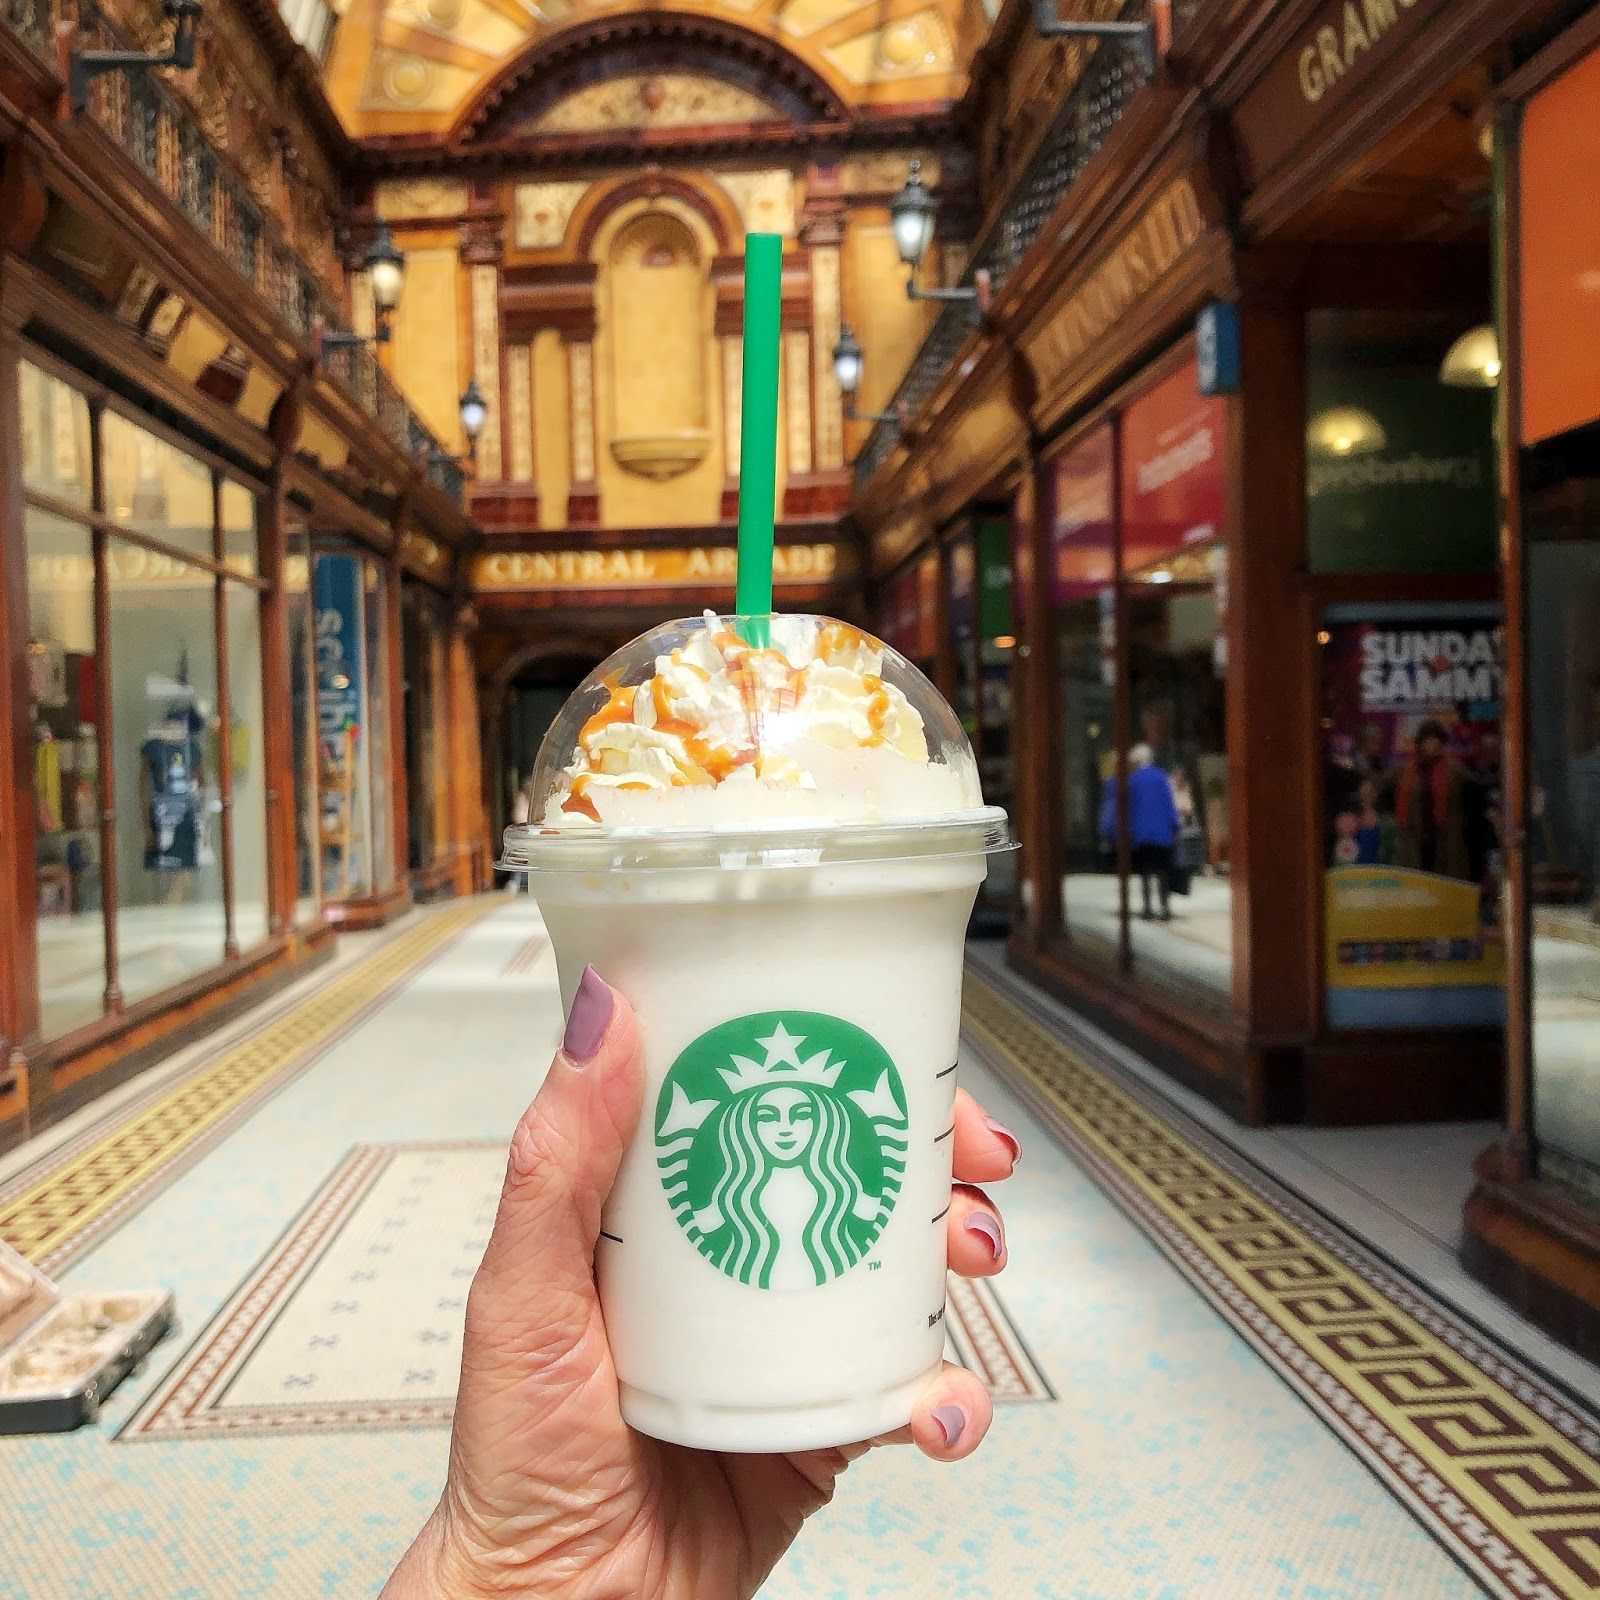 My May Days - Starbucks Frappuccino